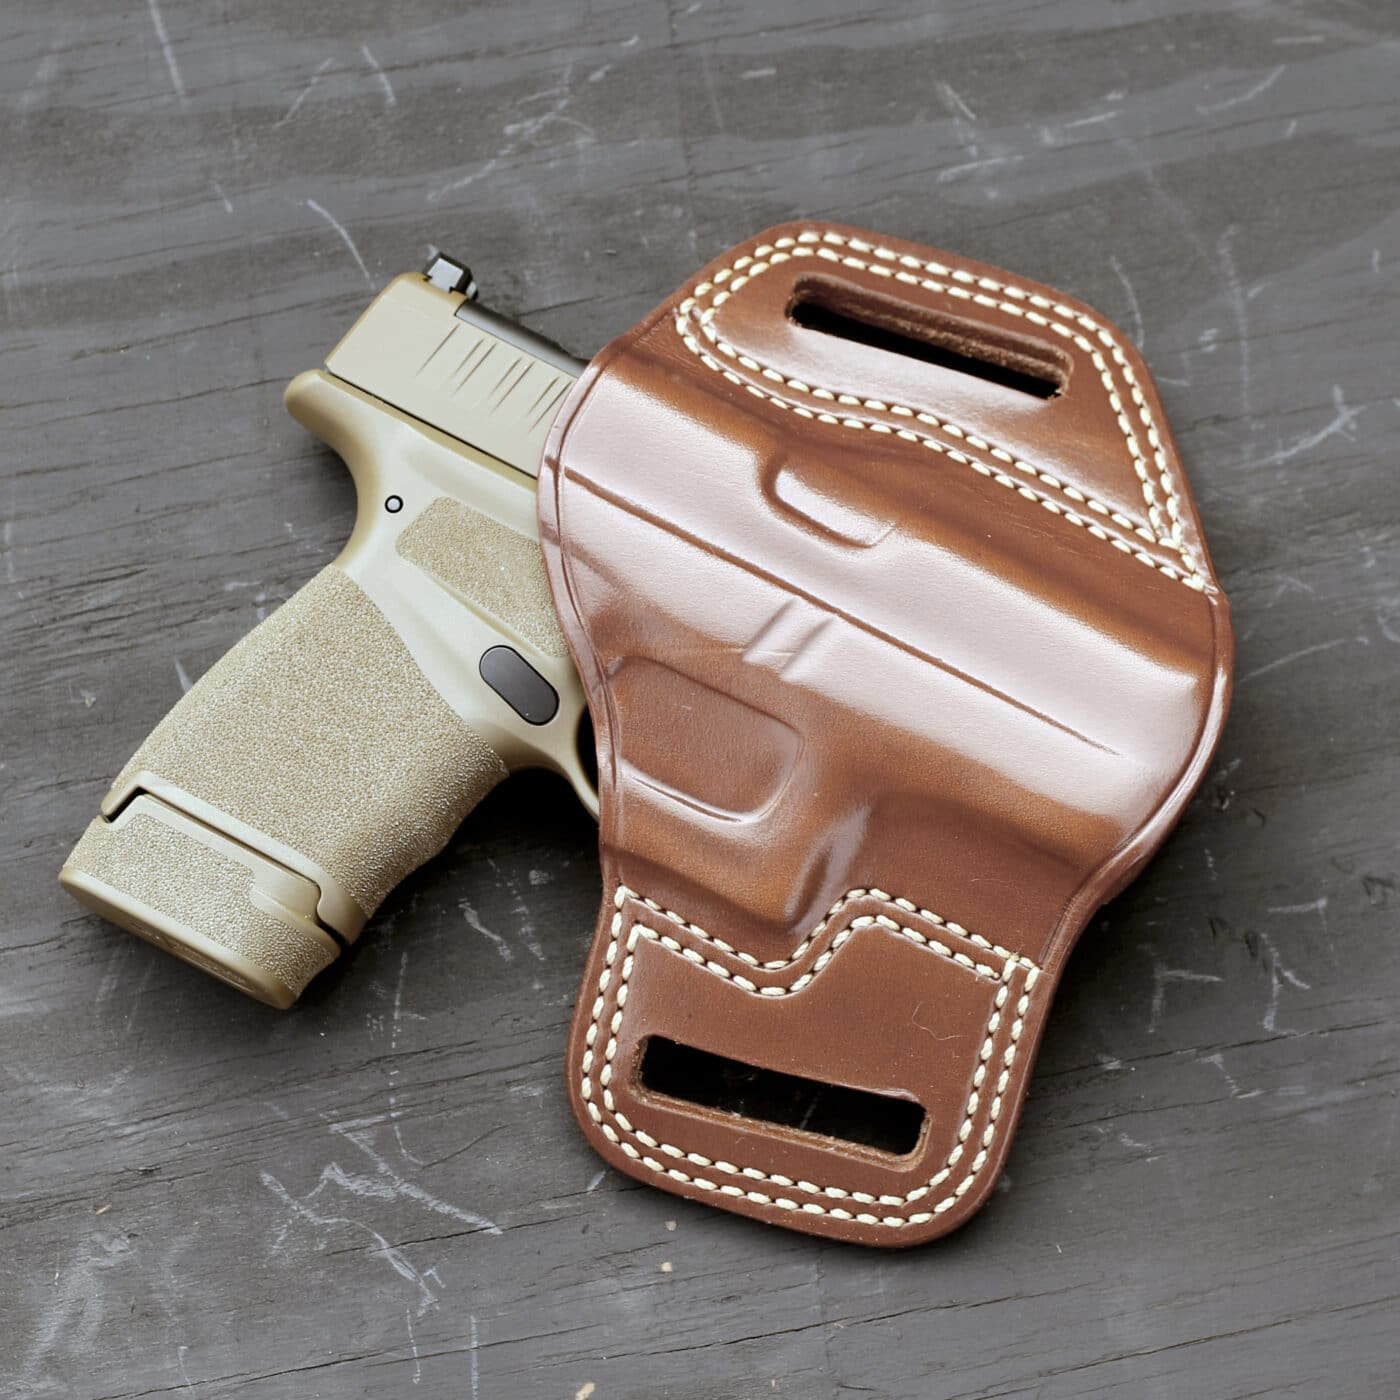 Galco Combat Master holster with Hellcat pistol in it